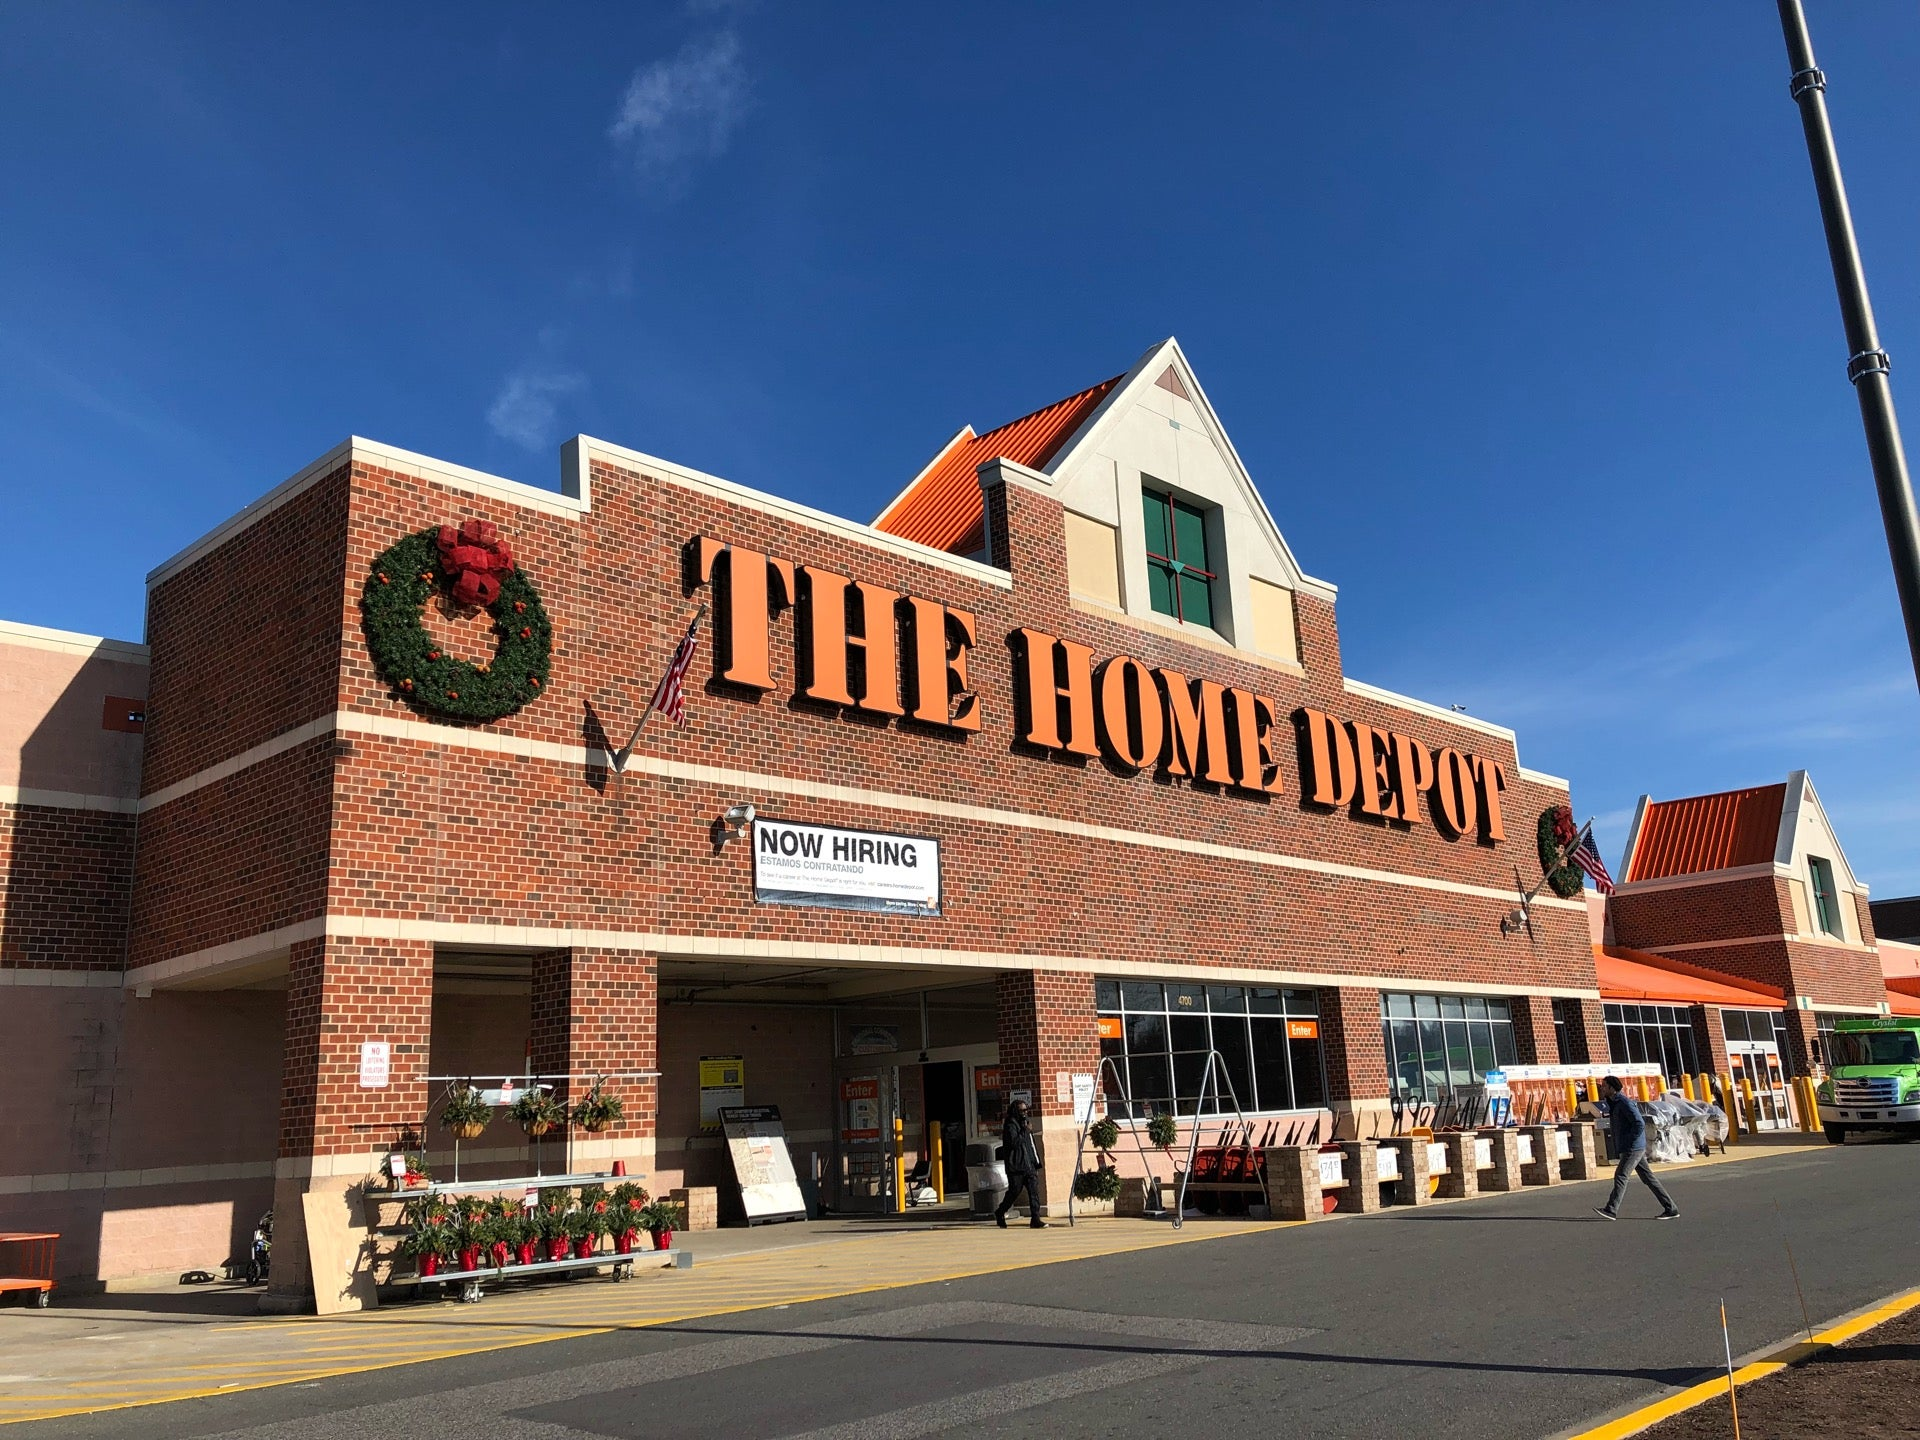 The Home Depot at 4700 Cherry Hill Rd College Park MD